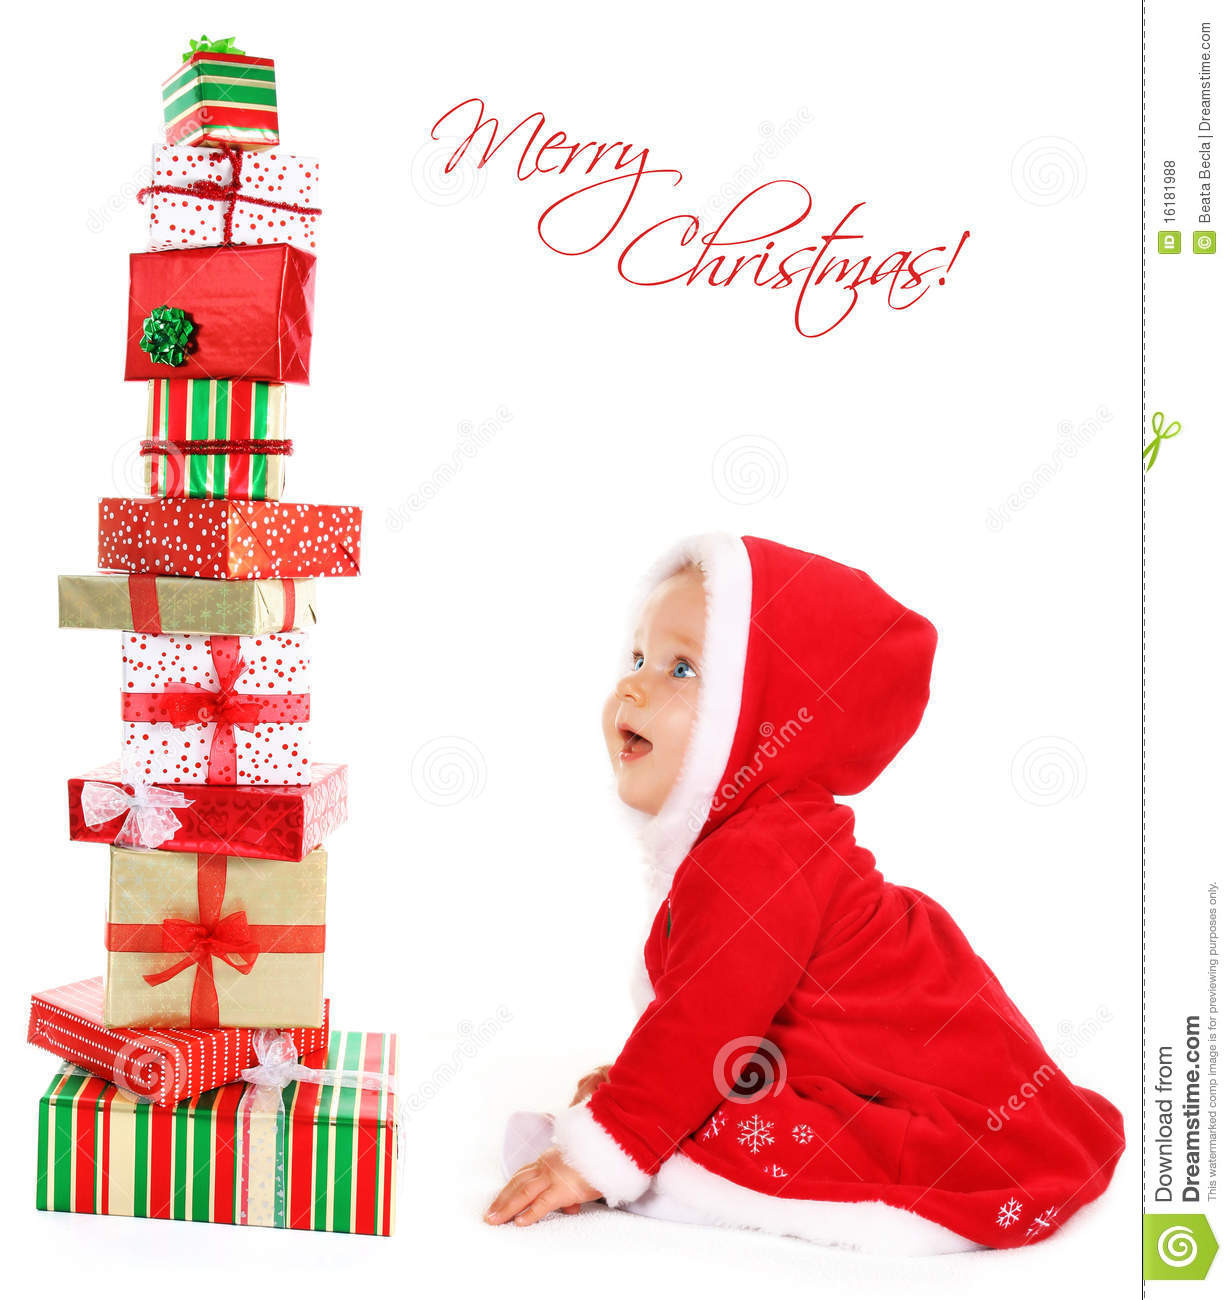 Christmas Gift Ideas From Baby  Christmas Baby With Gifts Royalty Free Stock s